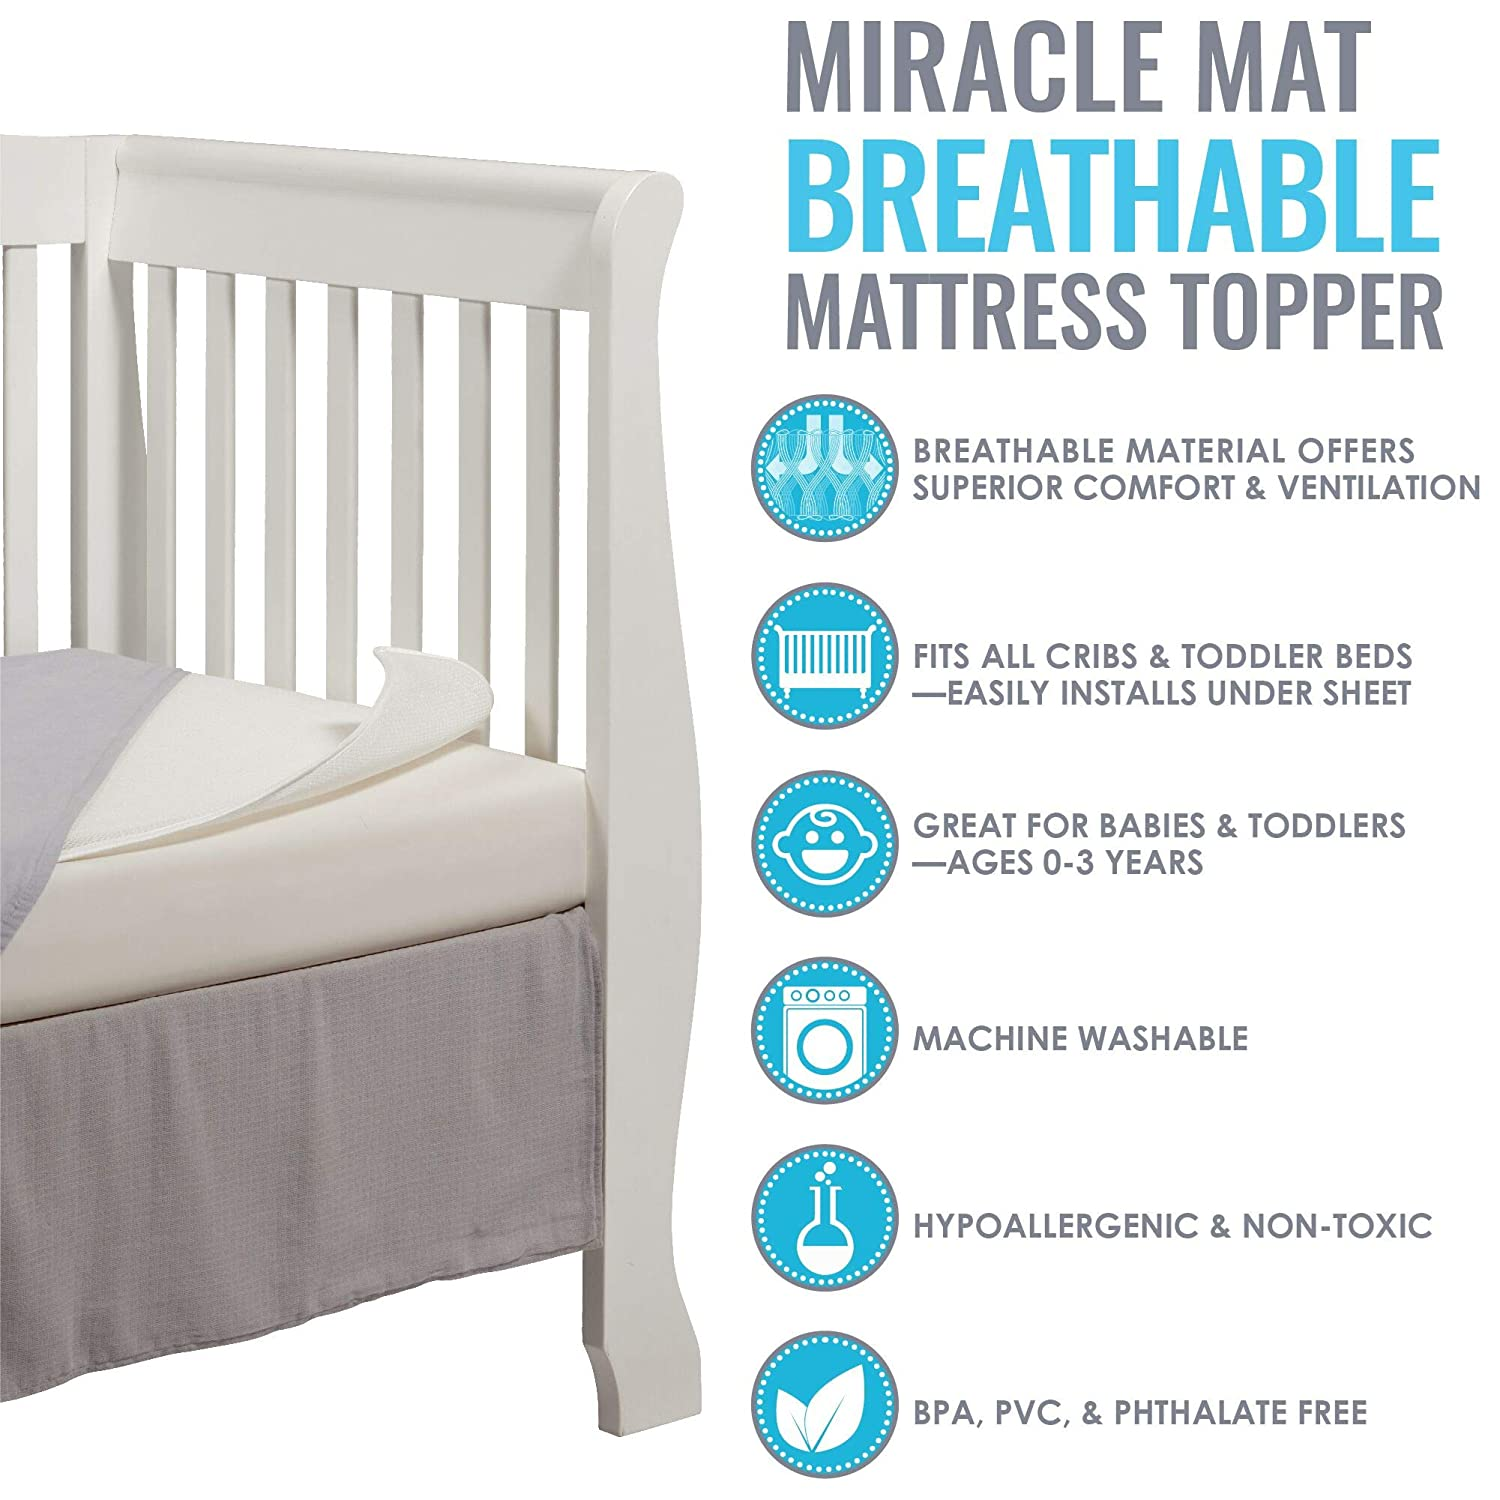 Baby Breathable Miracle Mat Superior Ventilation Crib Mattress Topper L.A